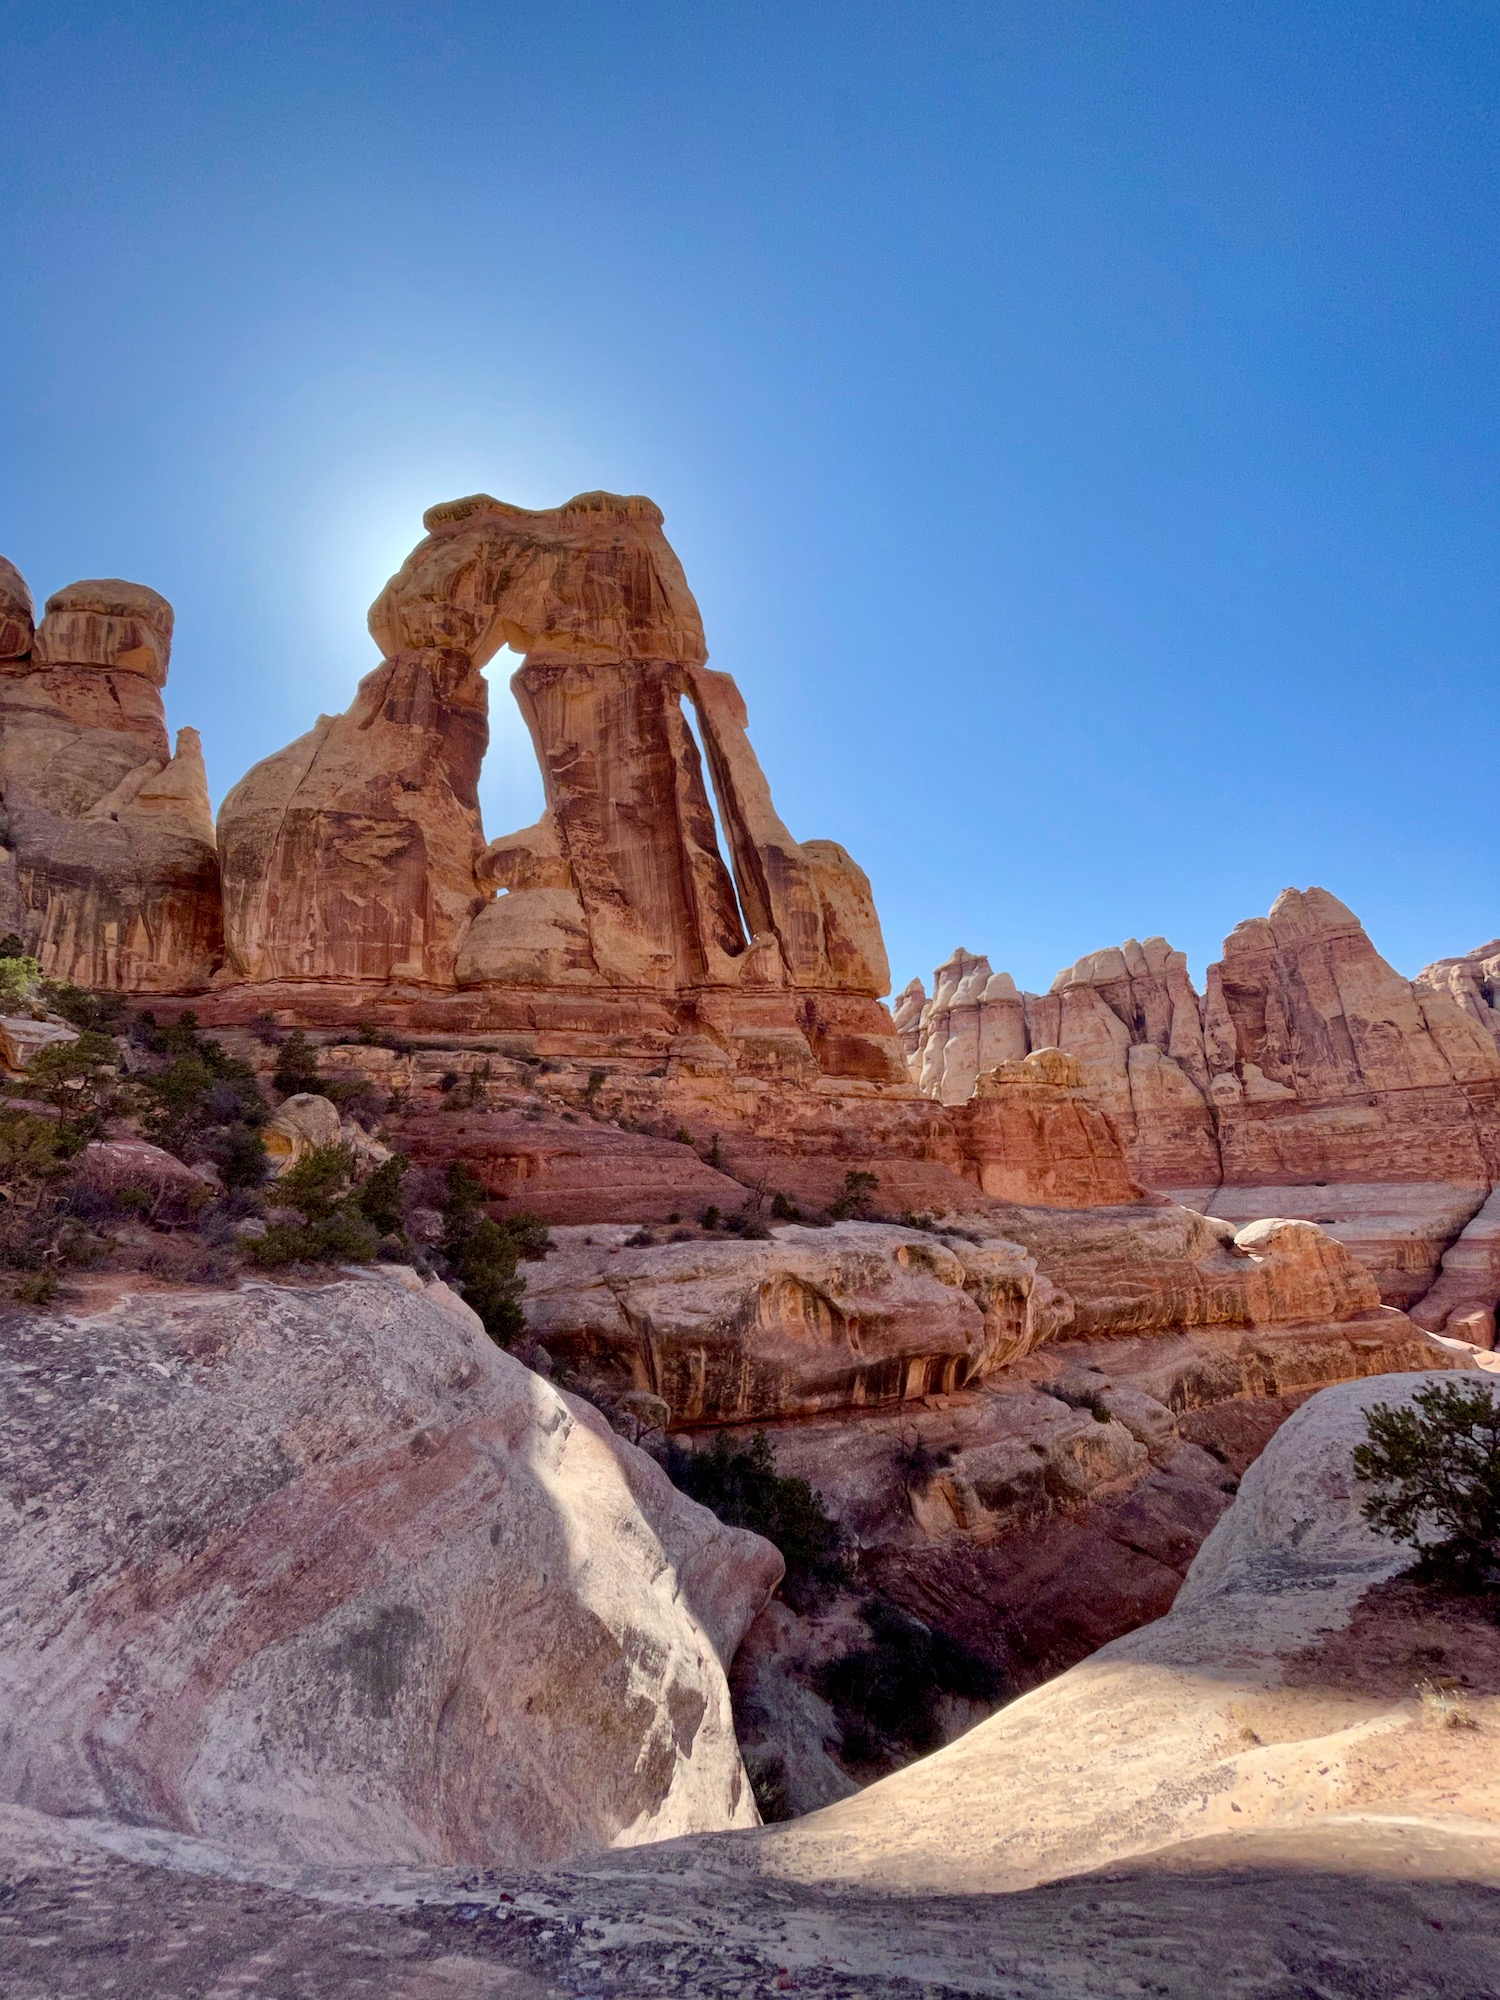 Druid Arch. The arch itself is 150 feet tall and the peak is 400 feet above the canyon floor.